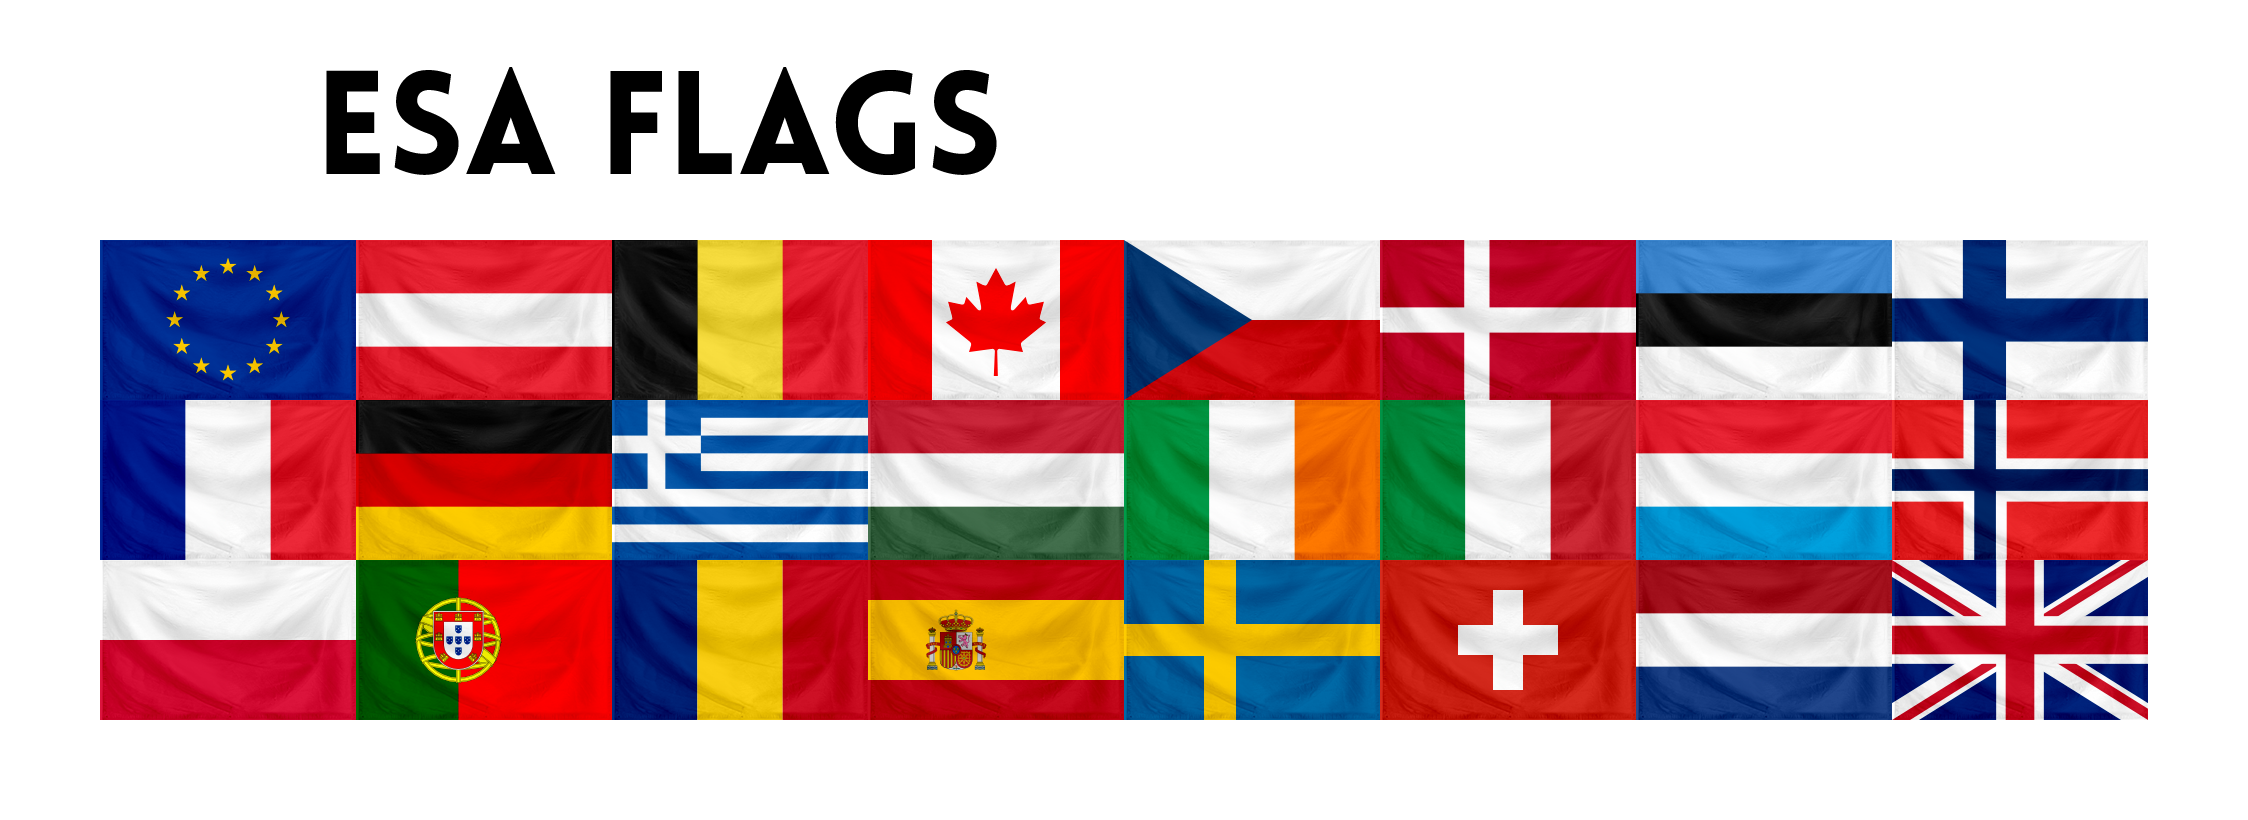 Country flags png. Esa v add